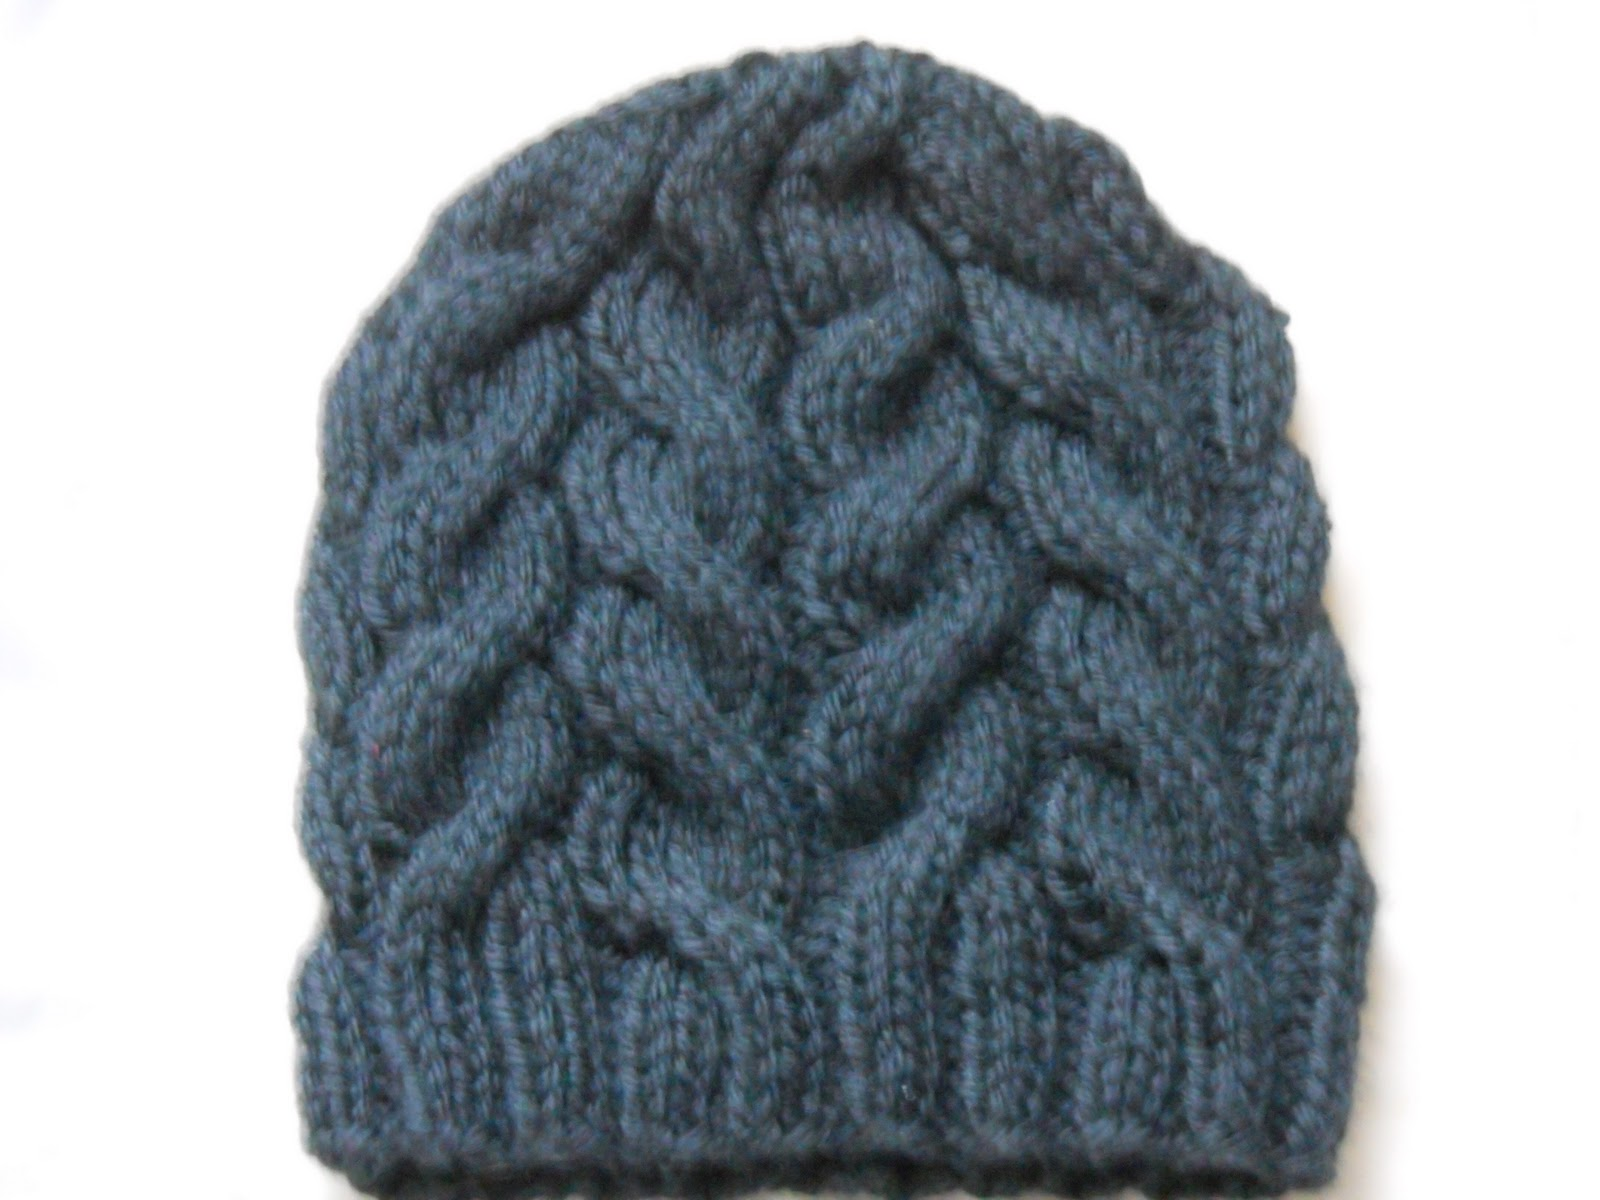 Design Knitting Patterns : Cable Knit Hat Pattern A Knitting Blog